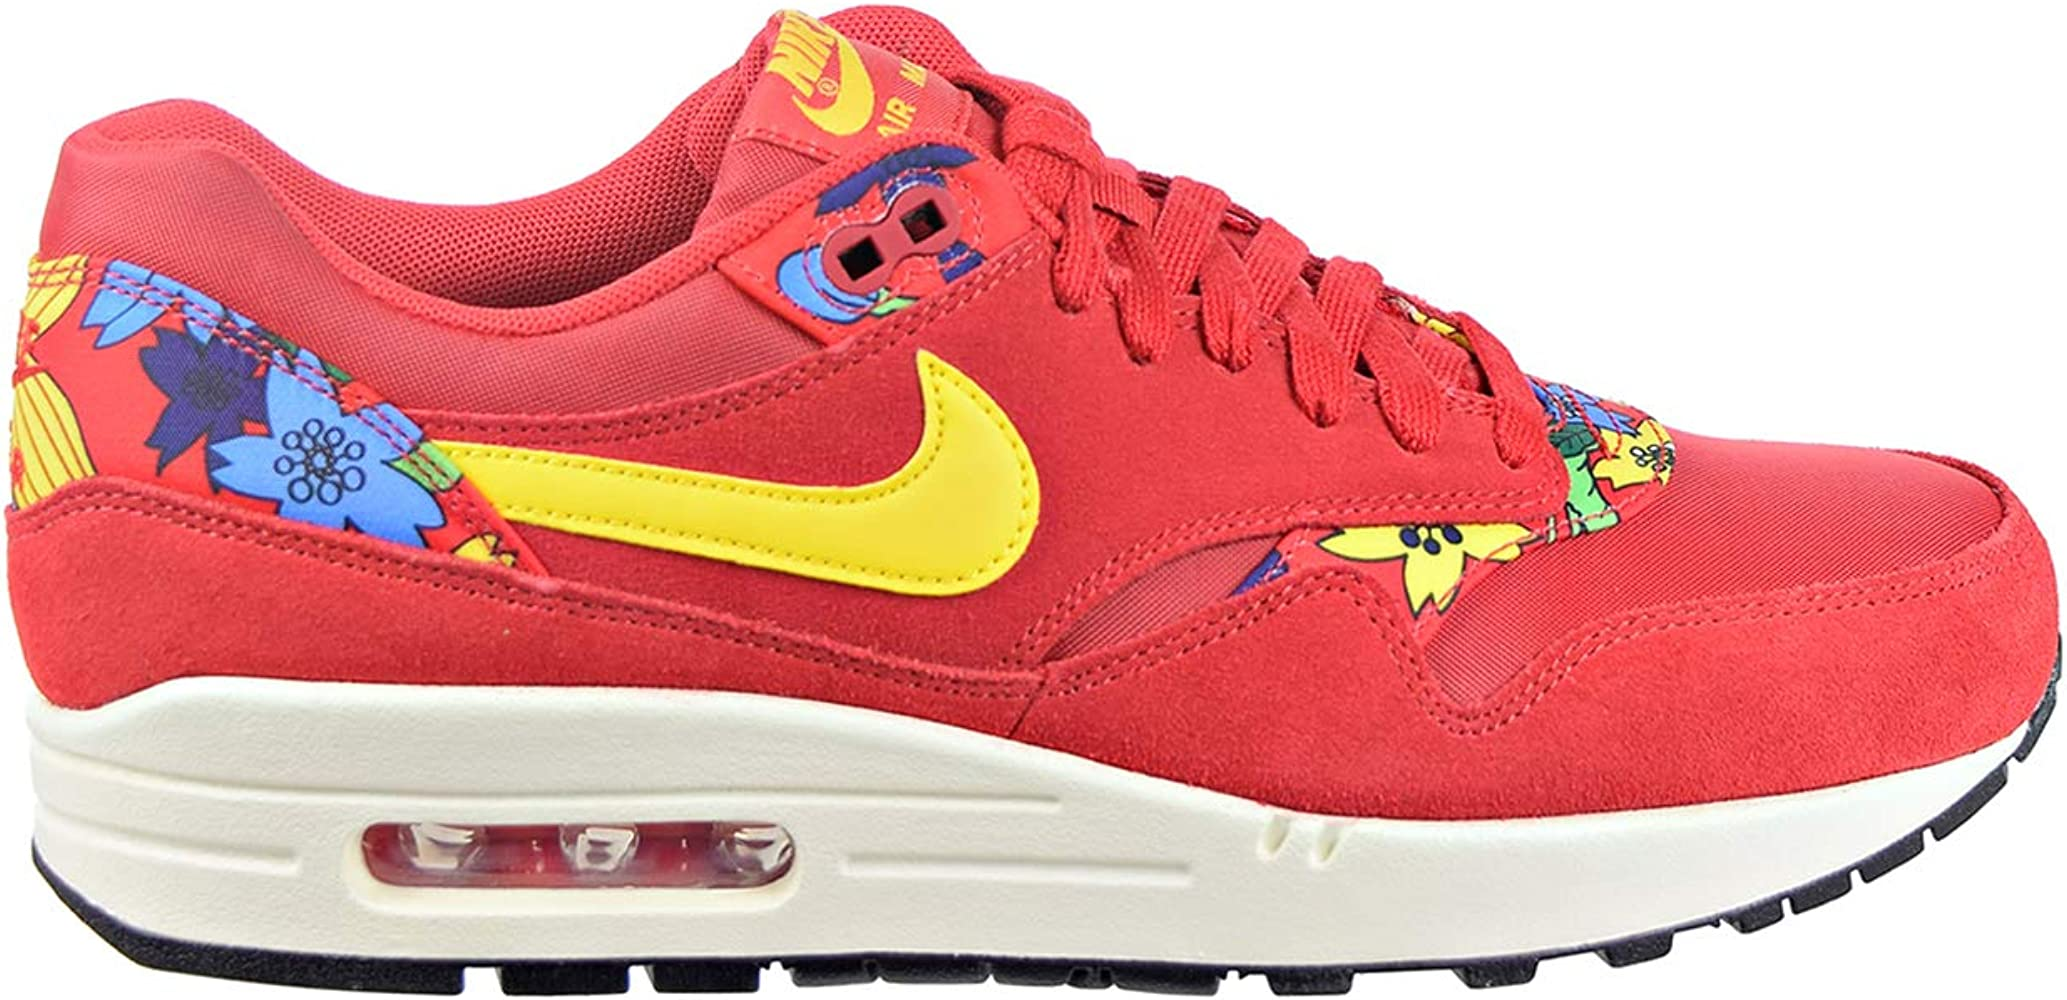 W'S AIR MAX 1 PRINT 528898 602 SIZE 10.5 US Size